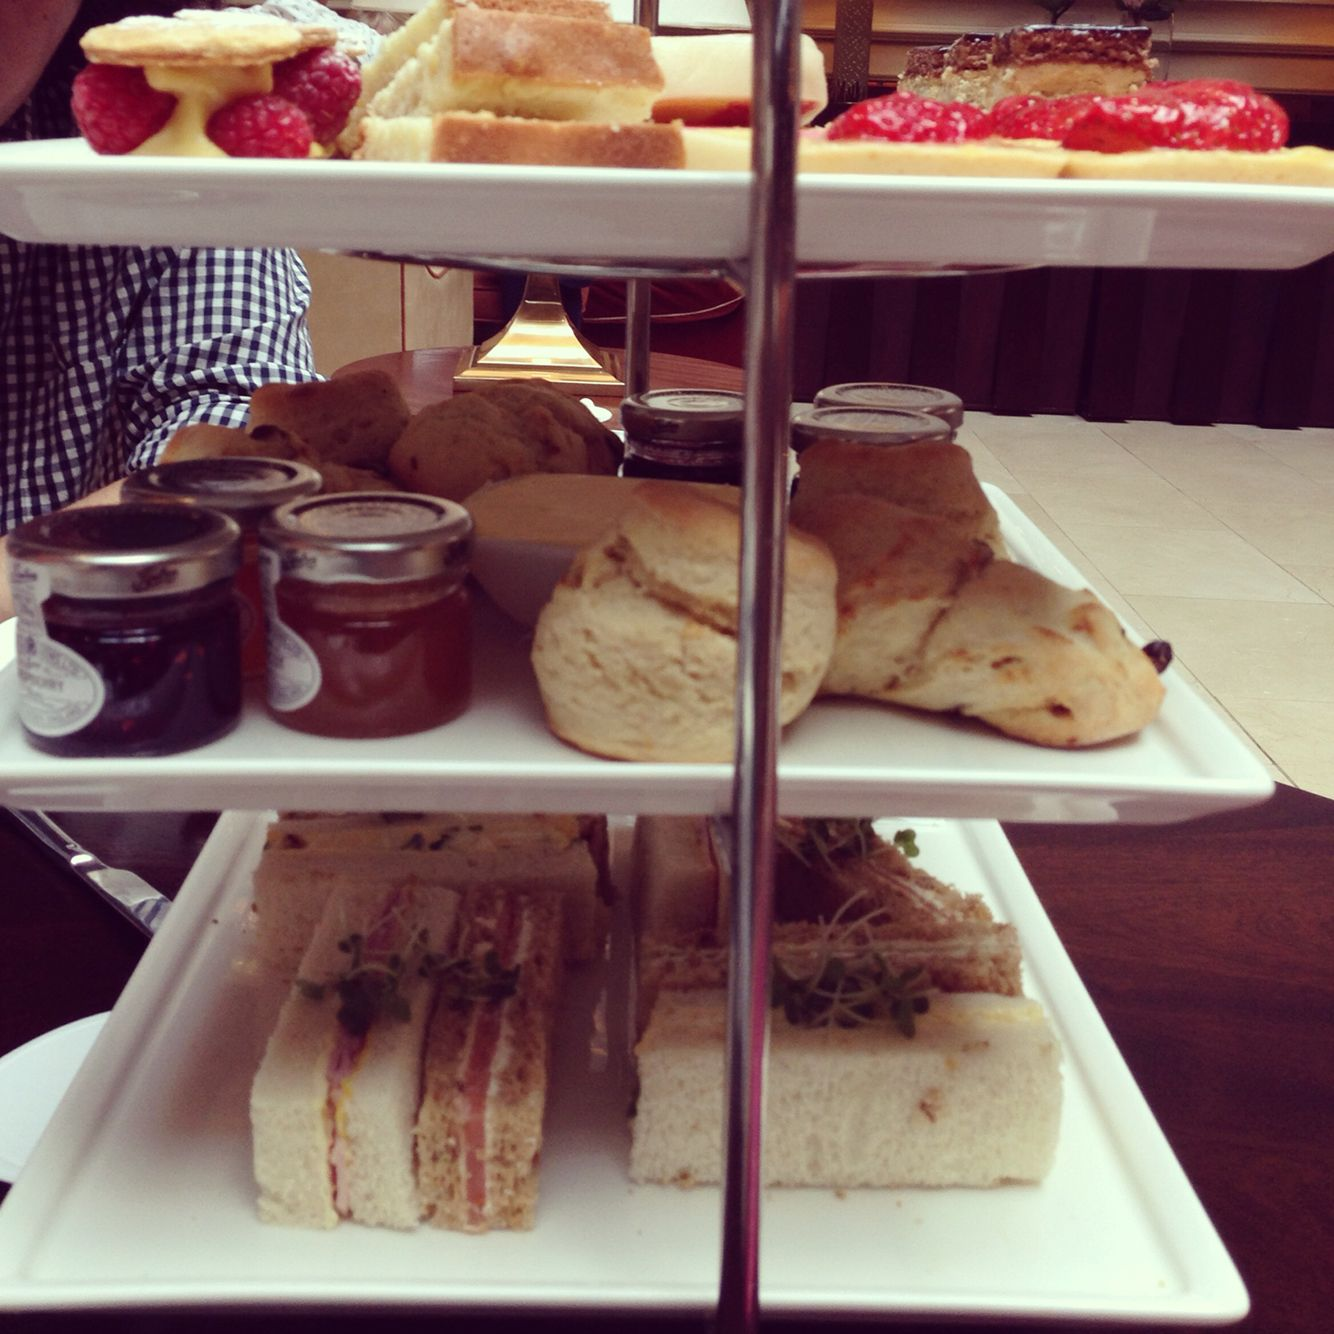 High tea in the UK